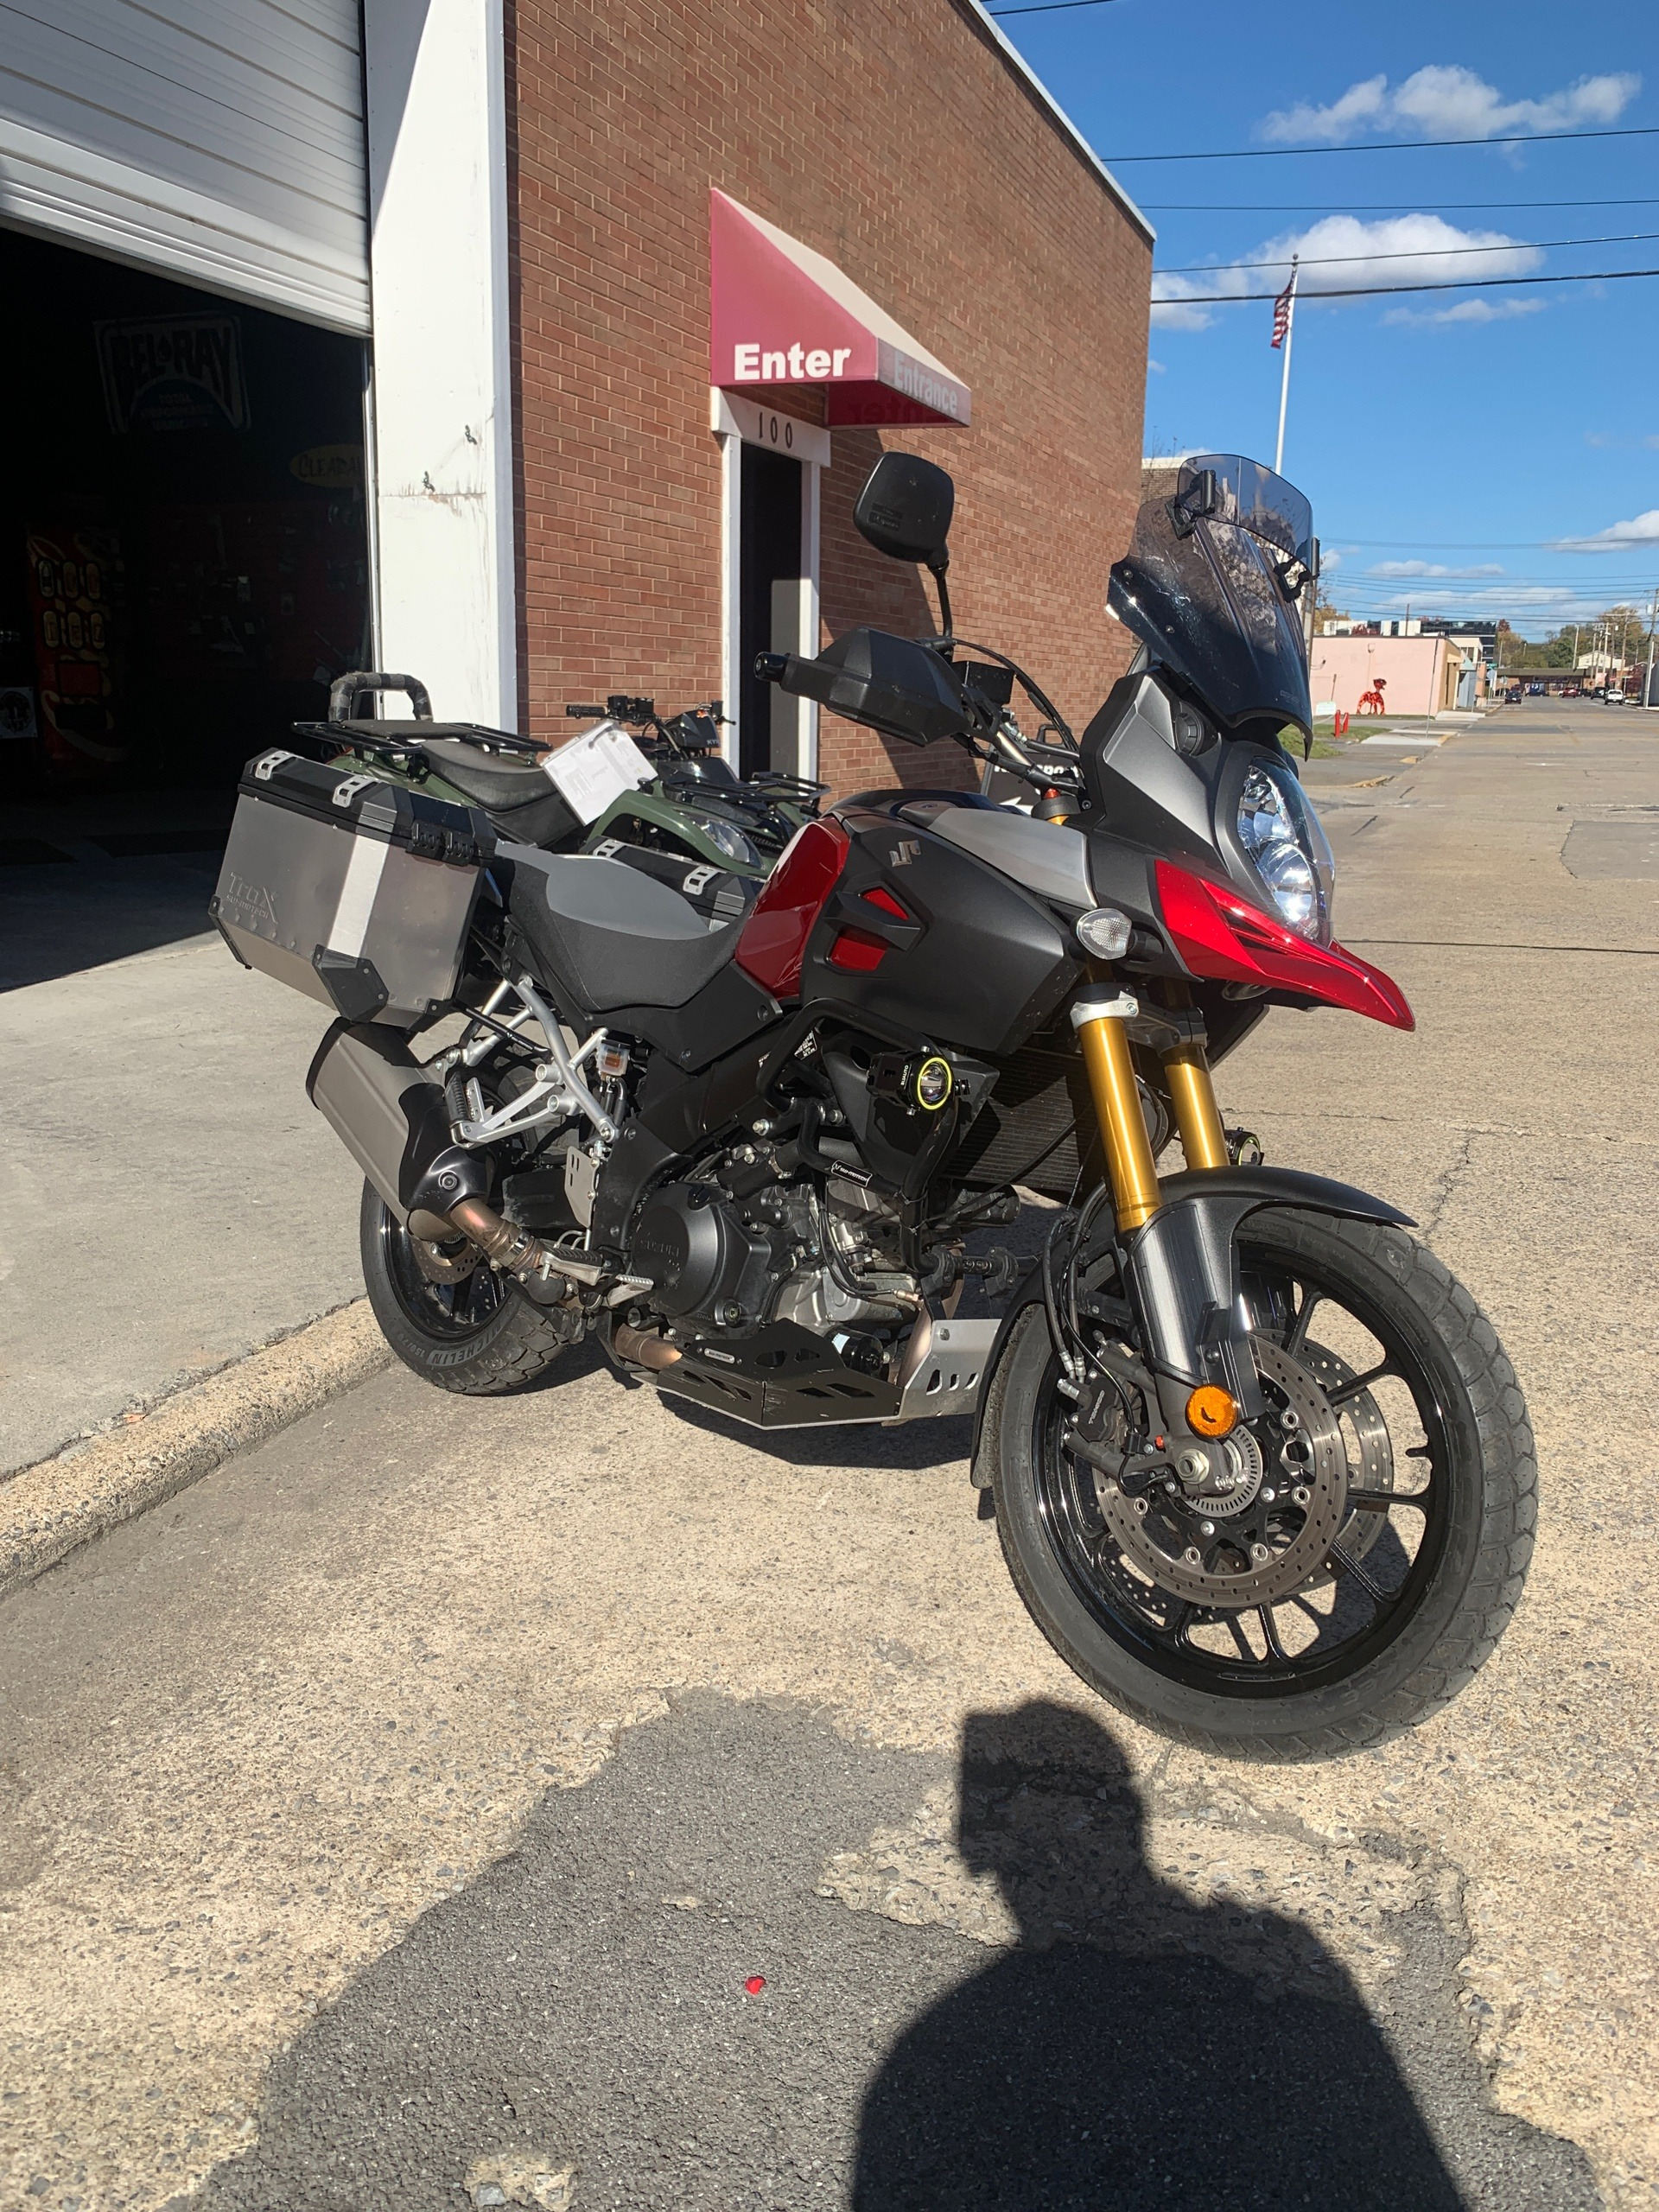 2014 Suzuki V-Strom 1000 ABS in Kingsport, Tennessee - Photo 1